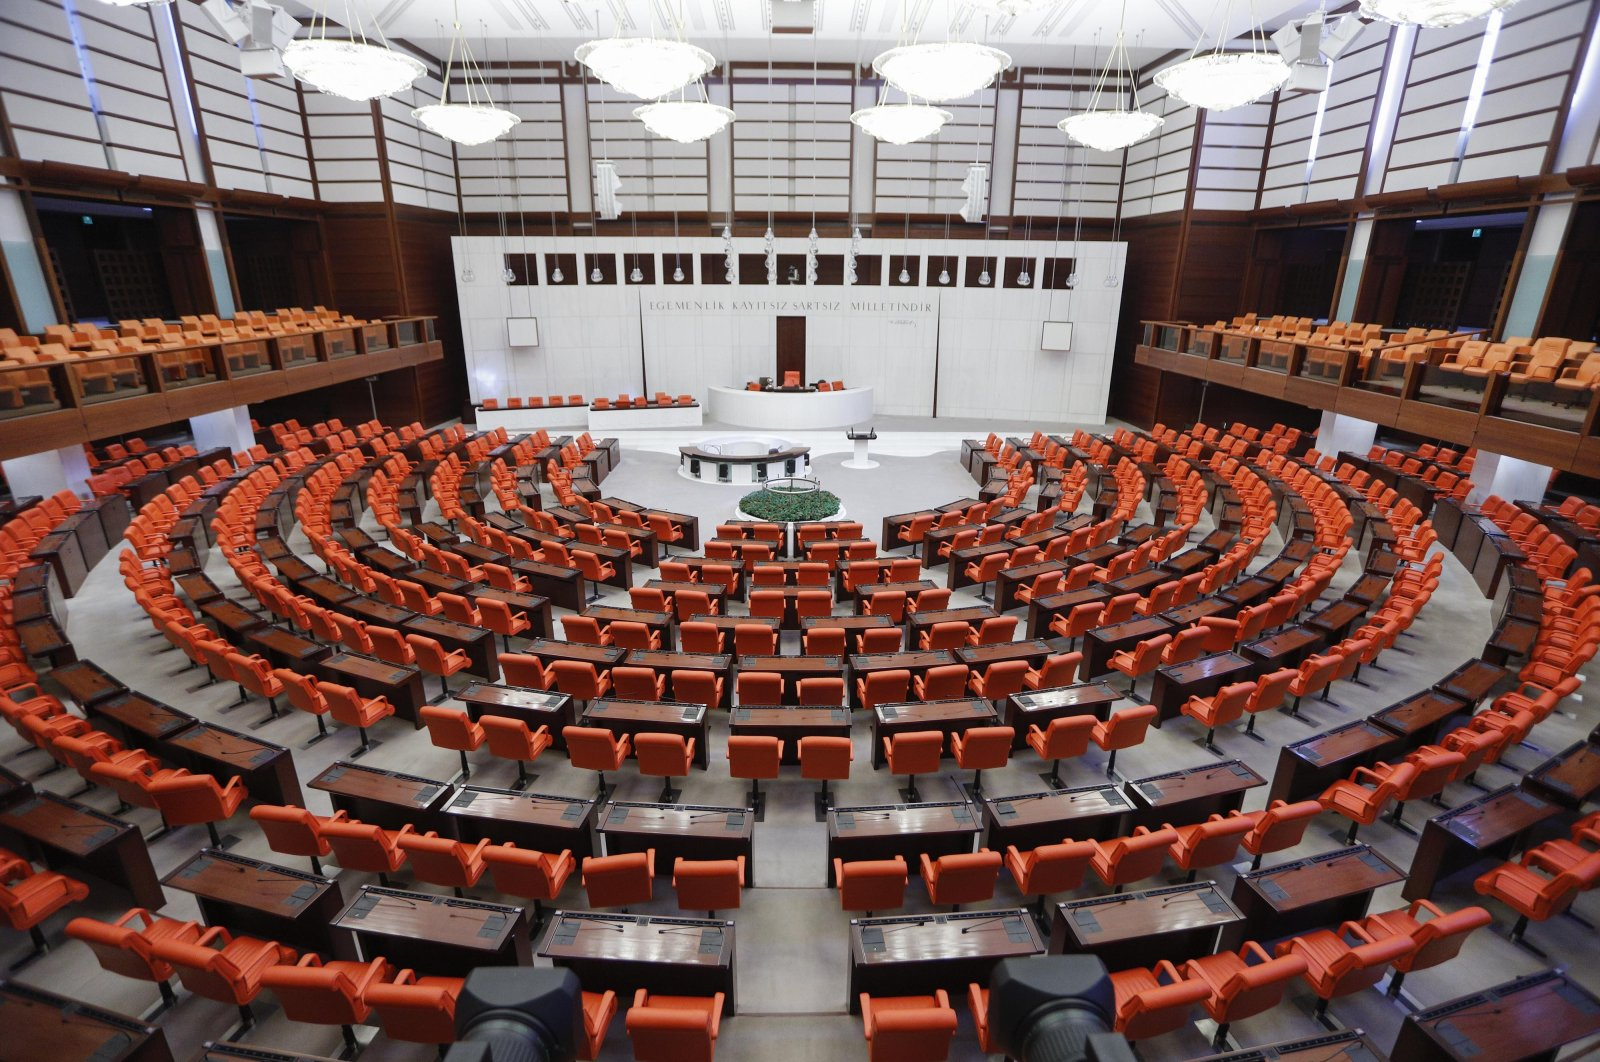 The Turkish Grand National Assembly (TBMM) is seen during regular disinfection activities as a precaution against COVID-19, Ankara, Turkey, Sept. 27, 2020 (DHA Photo)